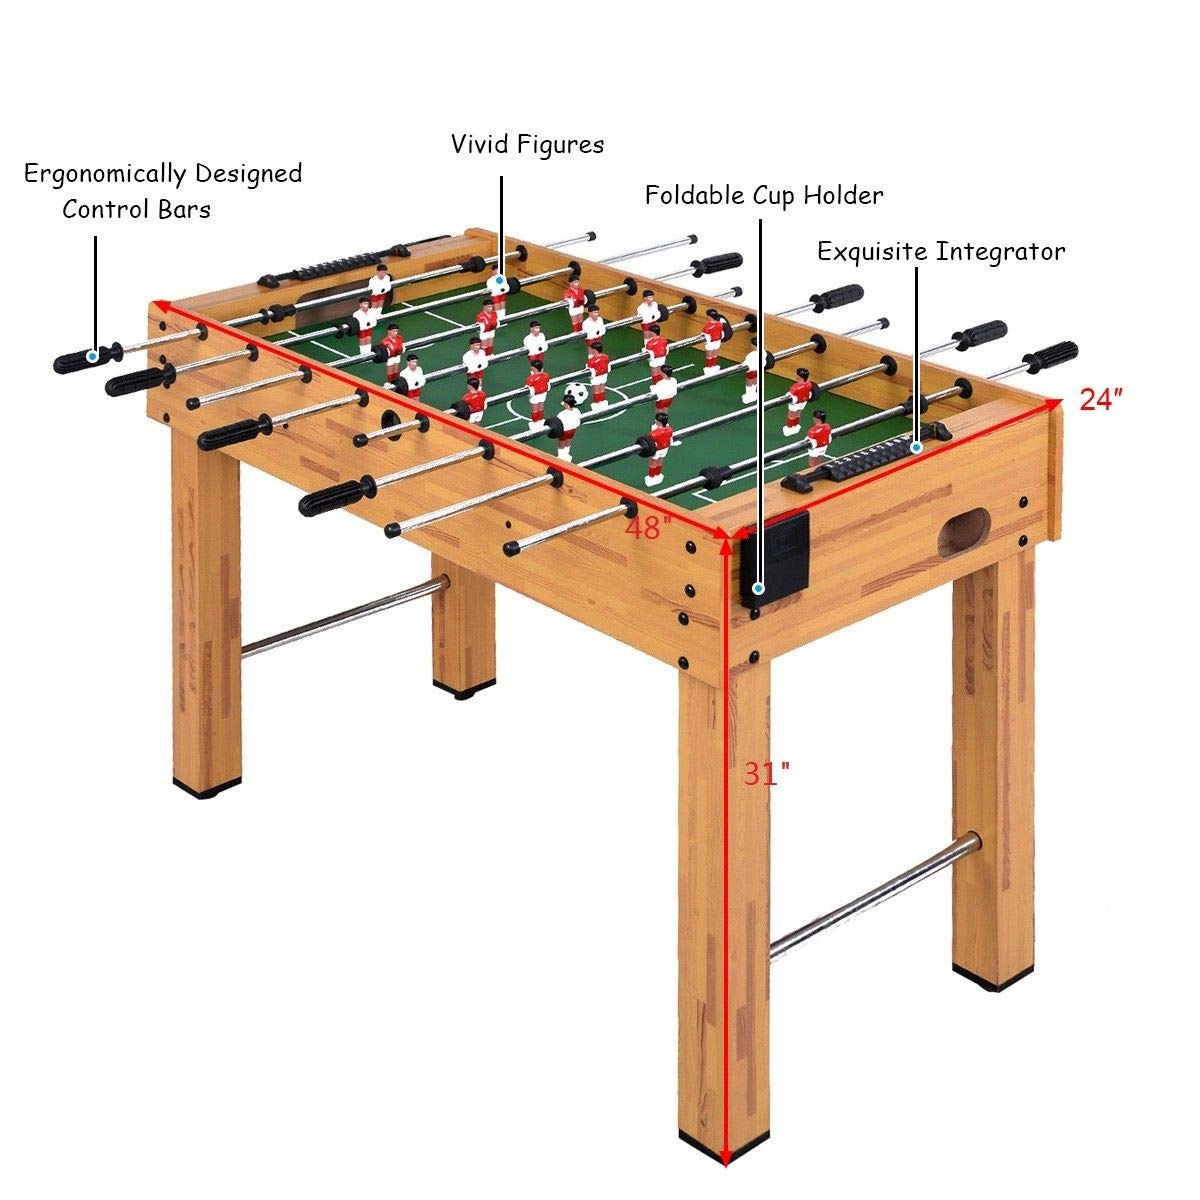 Giantex Foosball Soccer Table 48'' Competition Sized Arcade Game Room Hockey Family Sport by Giantex (Image #4)